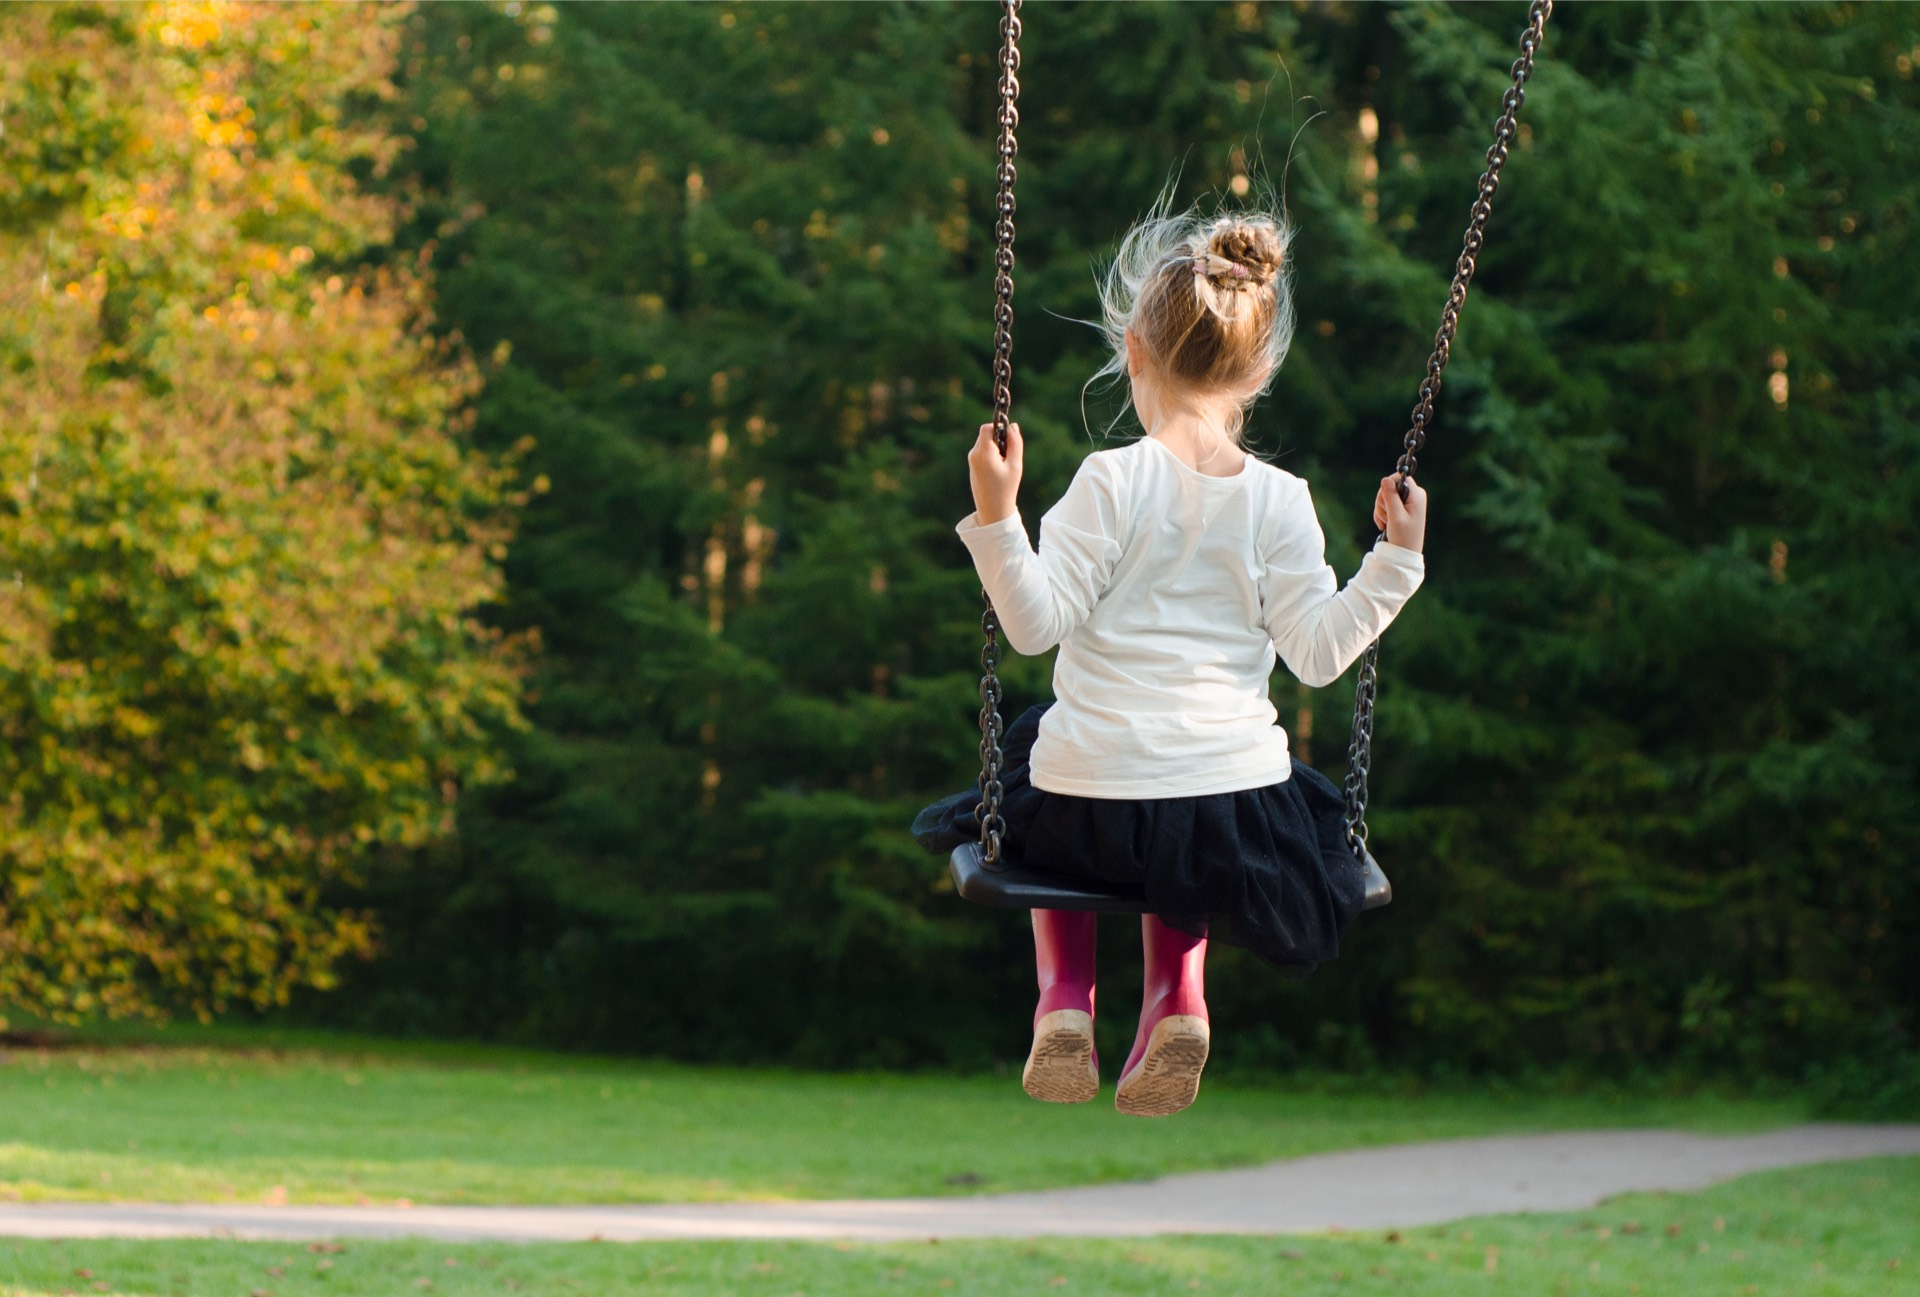 therapy pro kids child swinging on a swing with her back to the camera